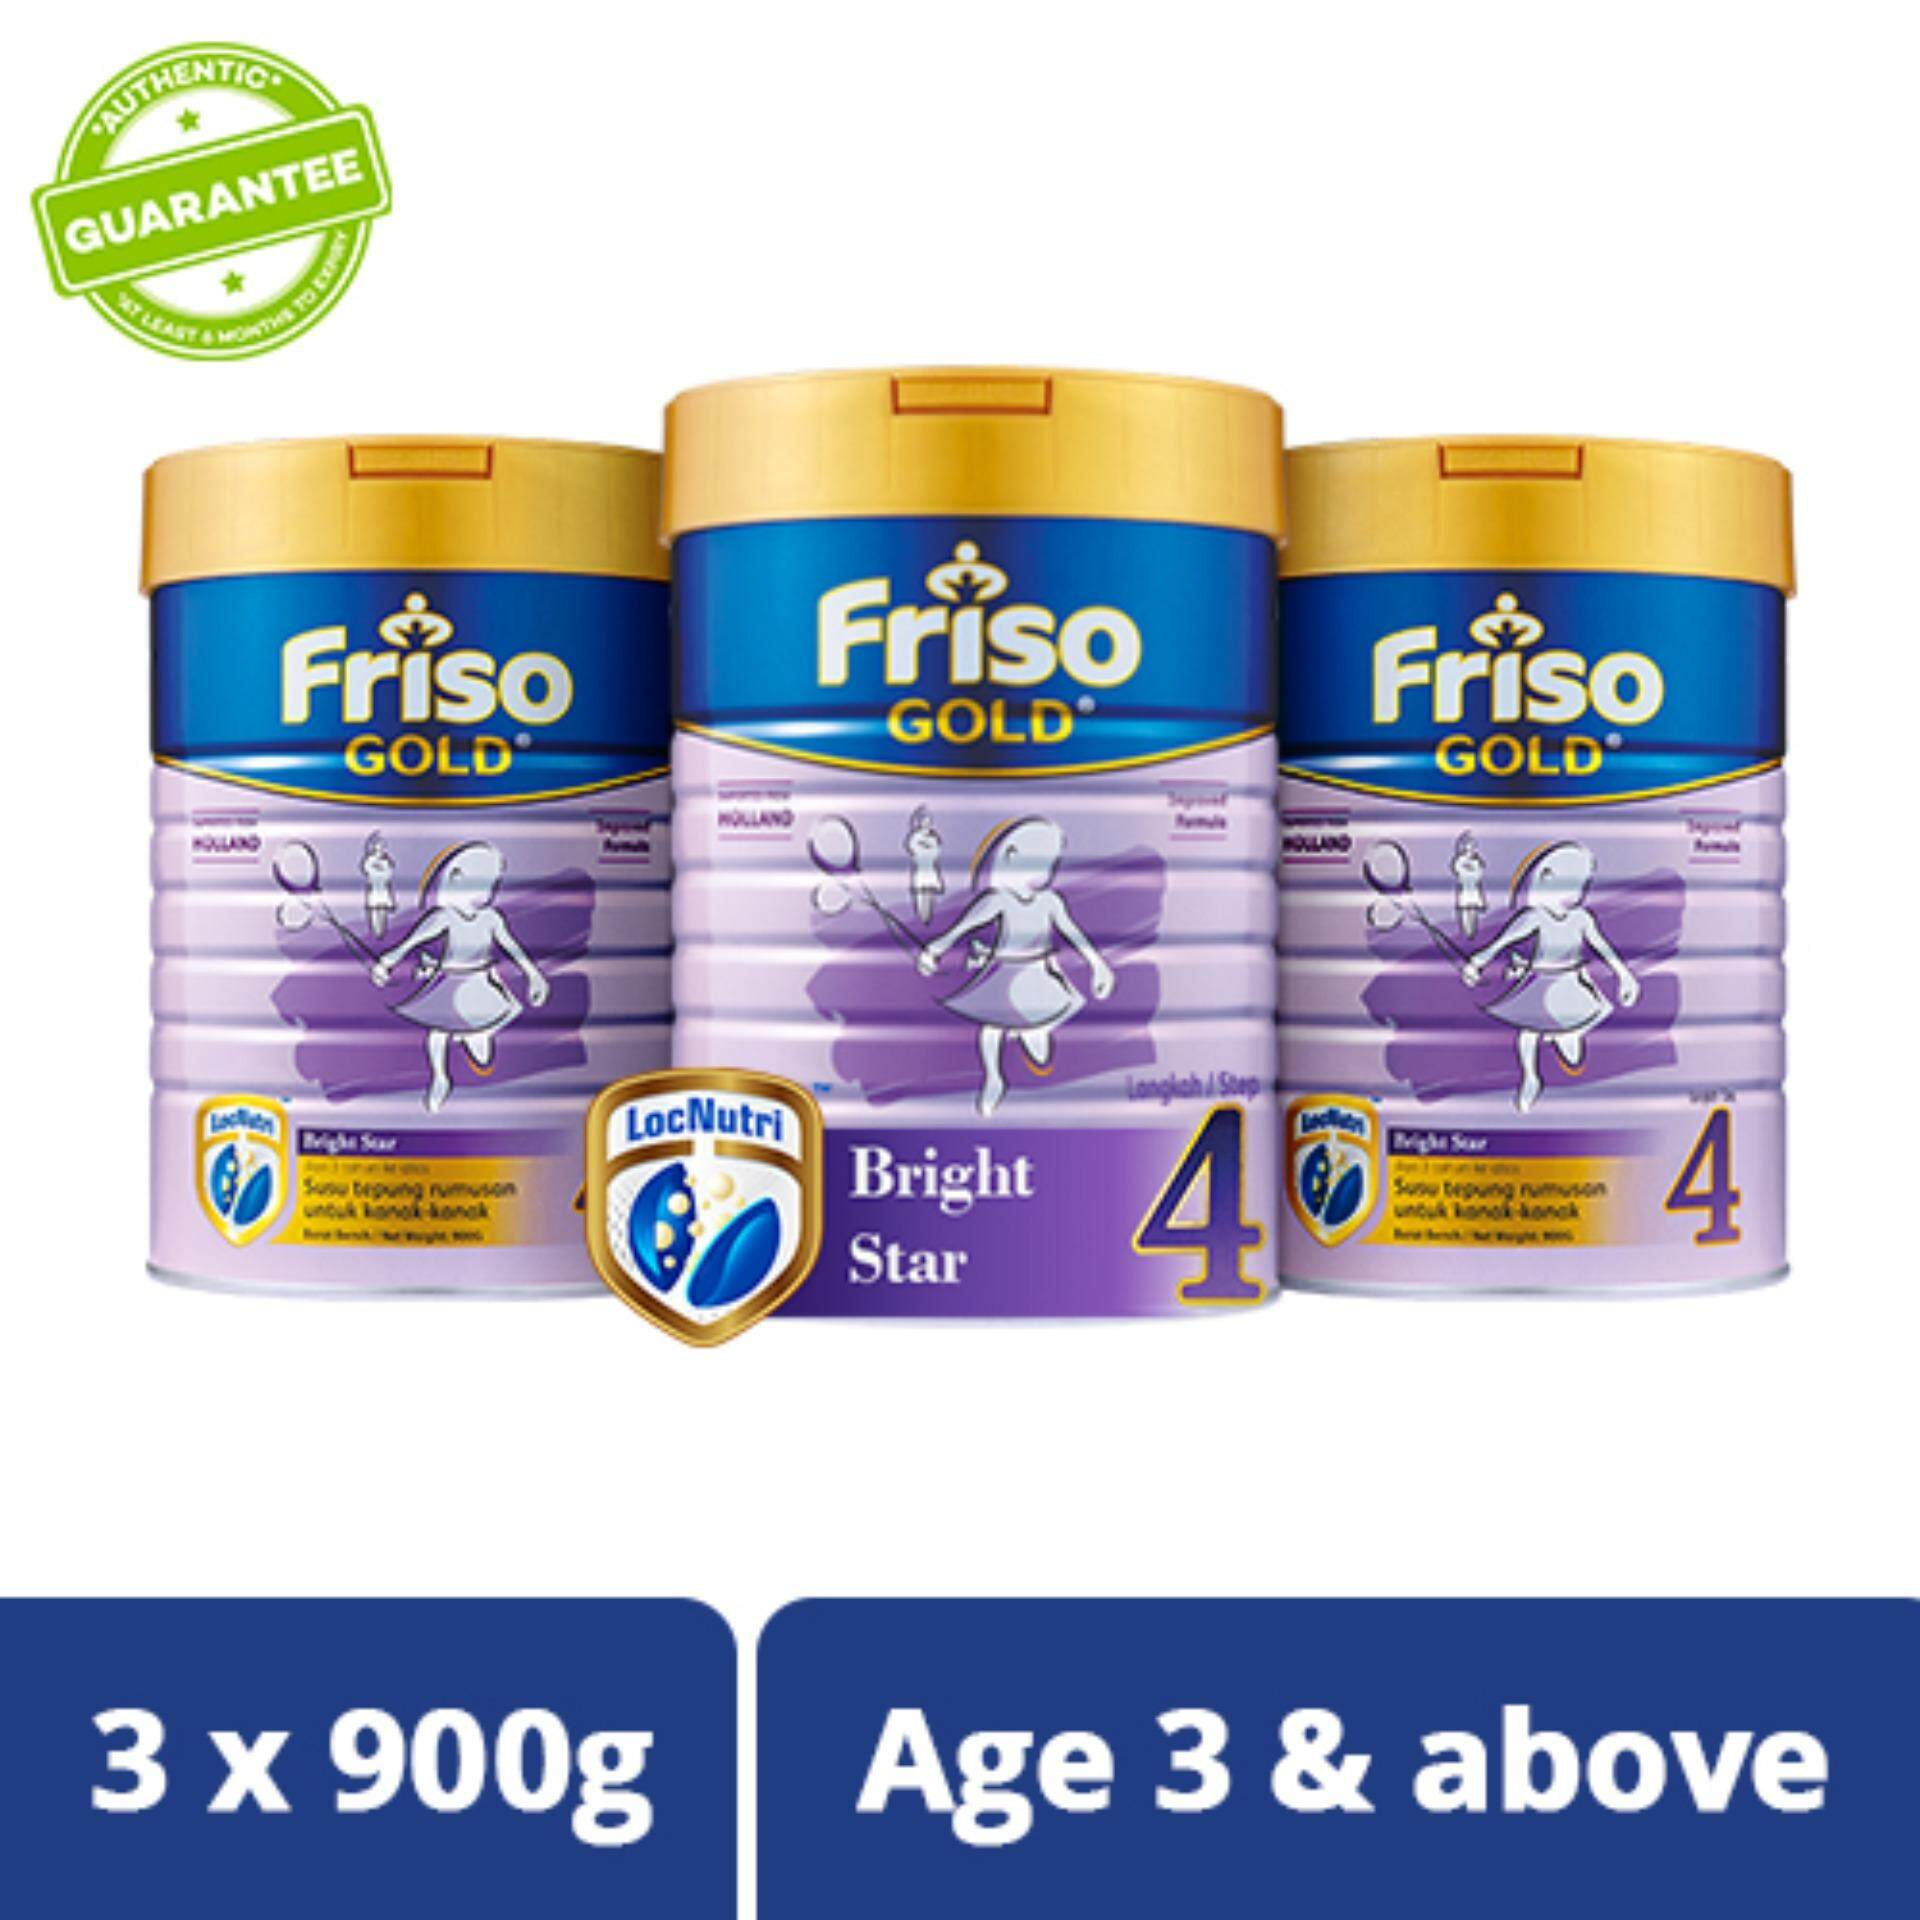 Friso Gold Step 4 900g Triple Pack By Lazada Retail Friso Gold.